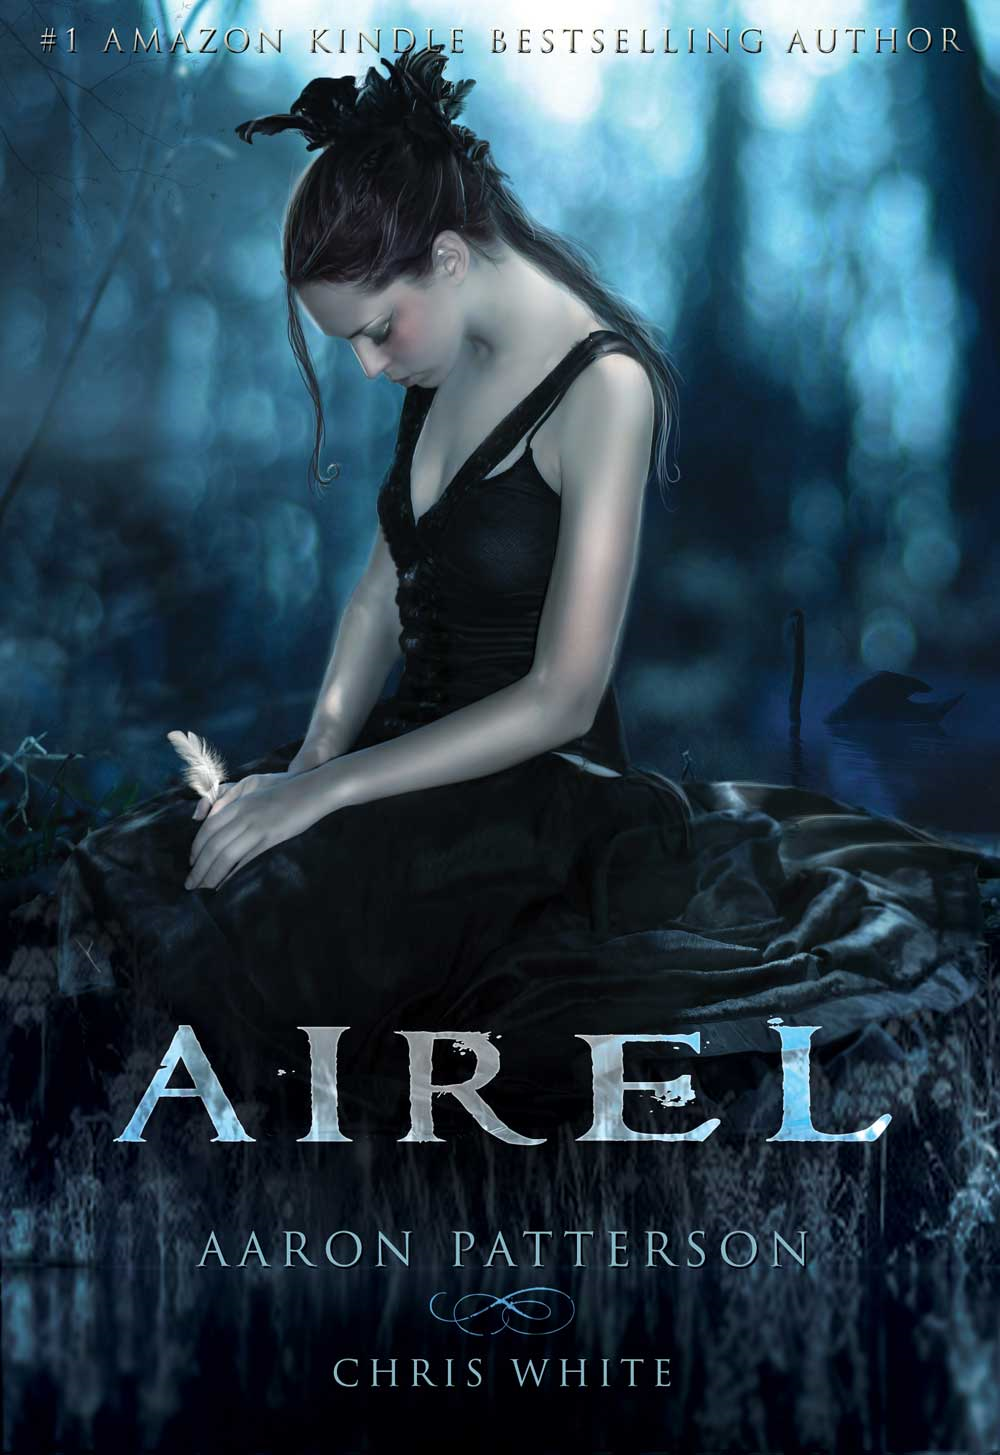 Airel (For fans of Stephanie Meyer, Cassandra Clare, and Veronica Roth)